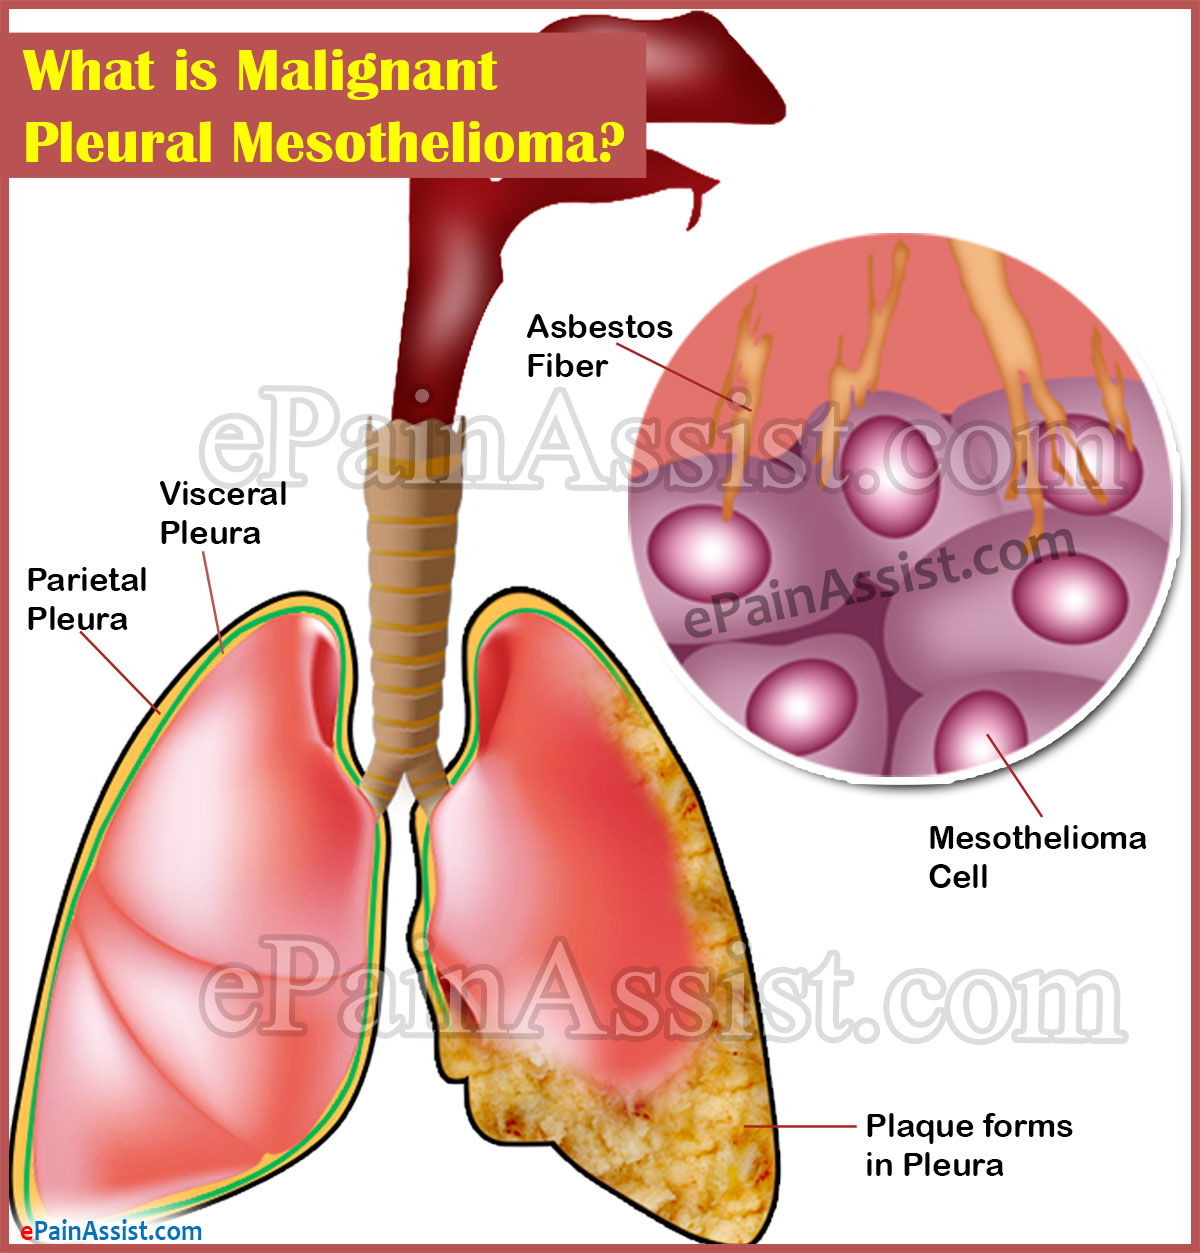 What is Malignant Pleural Mesothelioma?